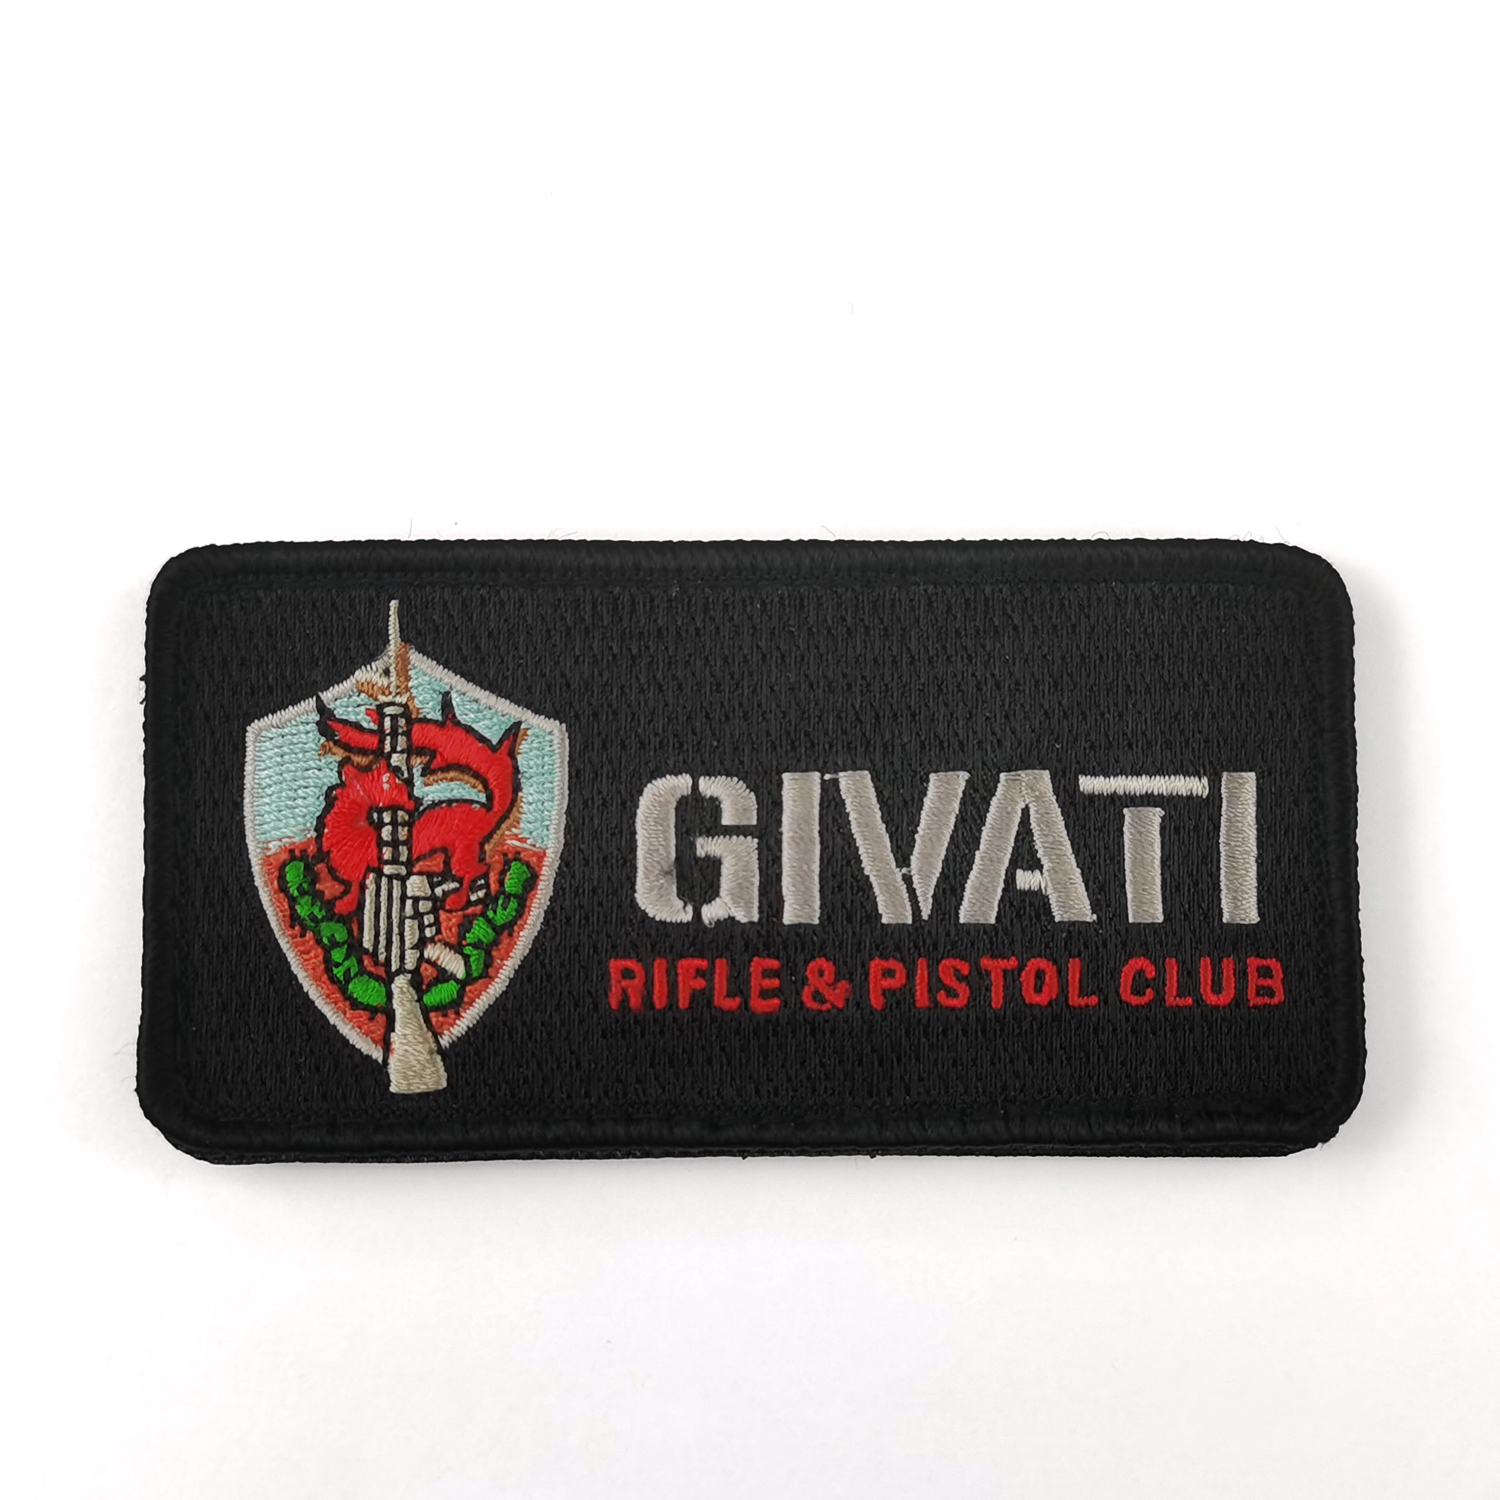 Custom Embroidered Patch Hat Label Custom Patches Letter Iron on Embroidery Patch For Clothing